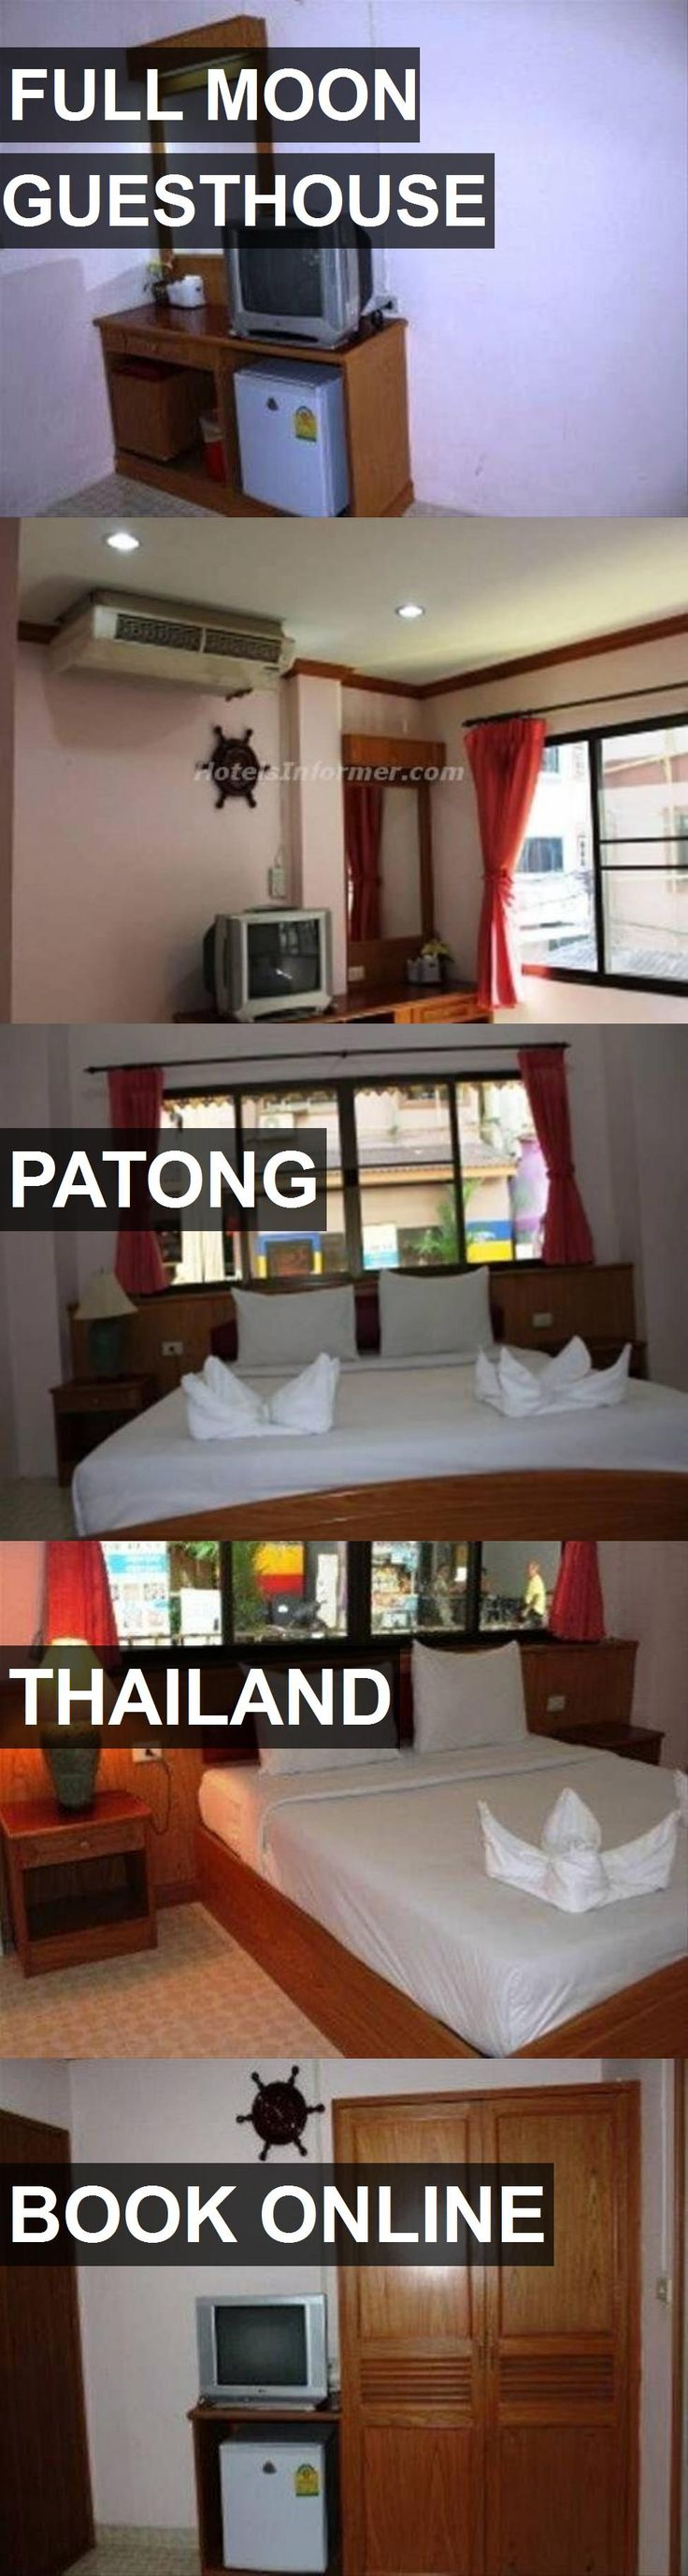 Hotel FULL MOON GUESTHOUSE in Patong, Thailand. For more information, photos, reviews and best prices please follow the link. #Thailand #Patong #travel #vacation #hotel